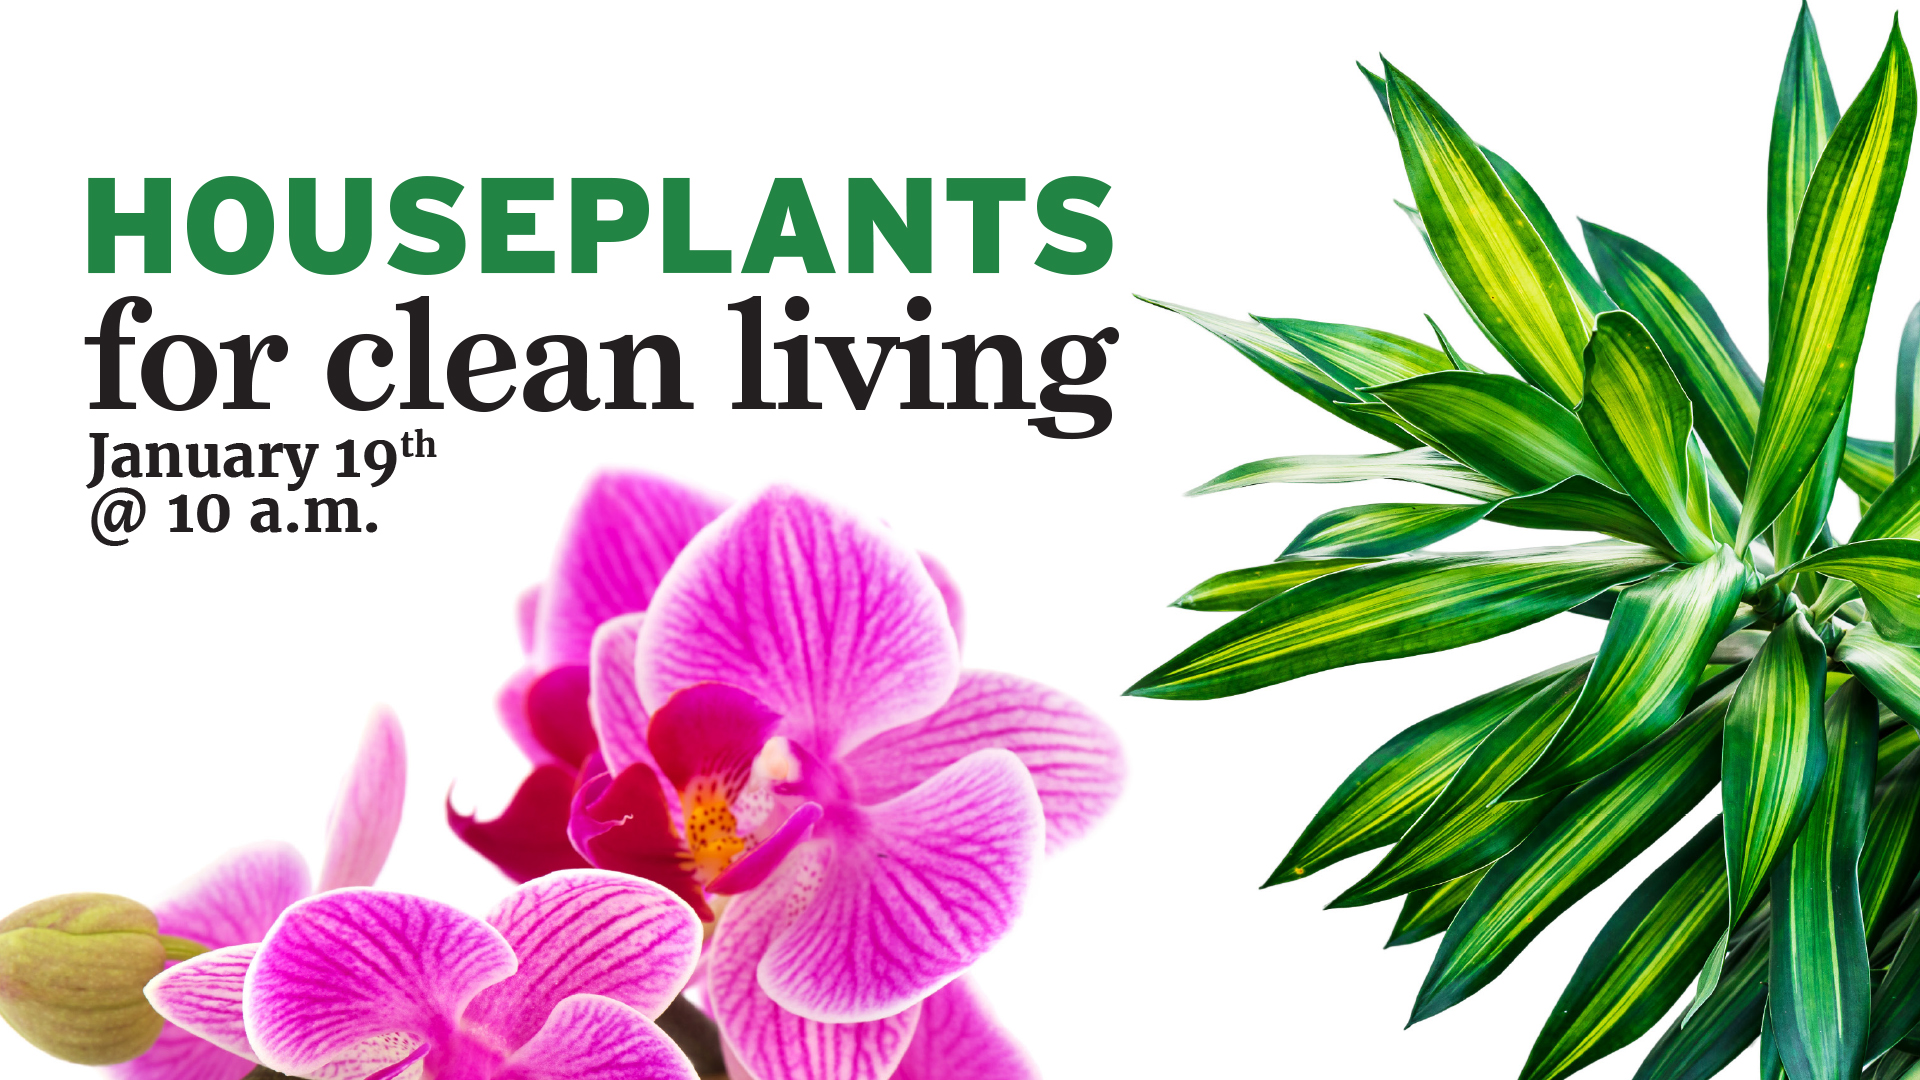 Houseplants for Clean Living